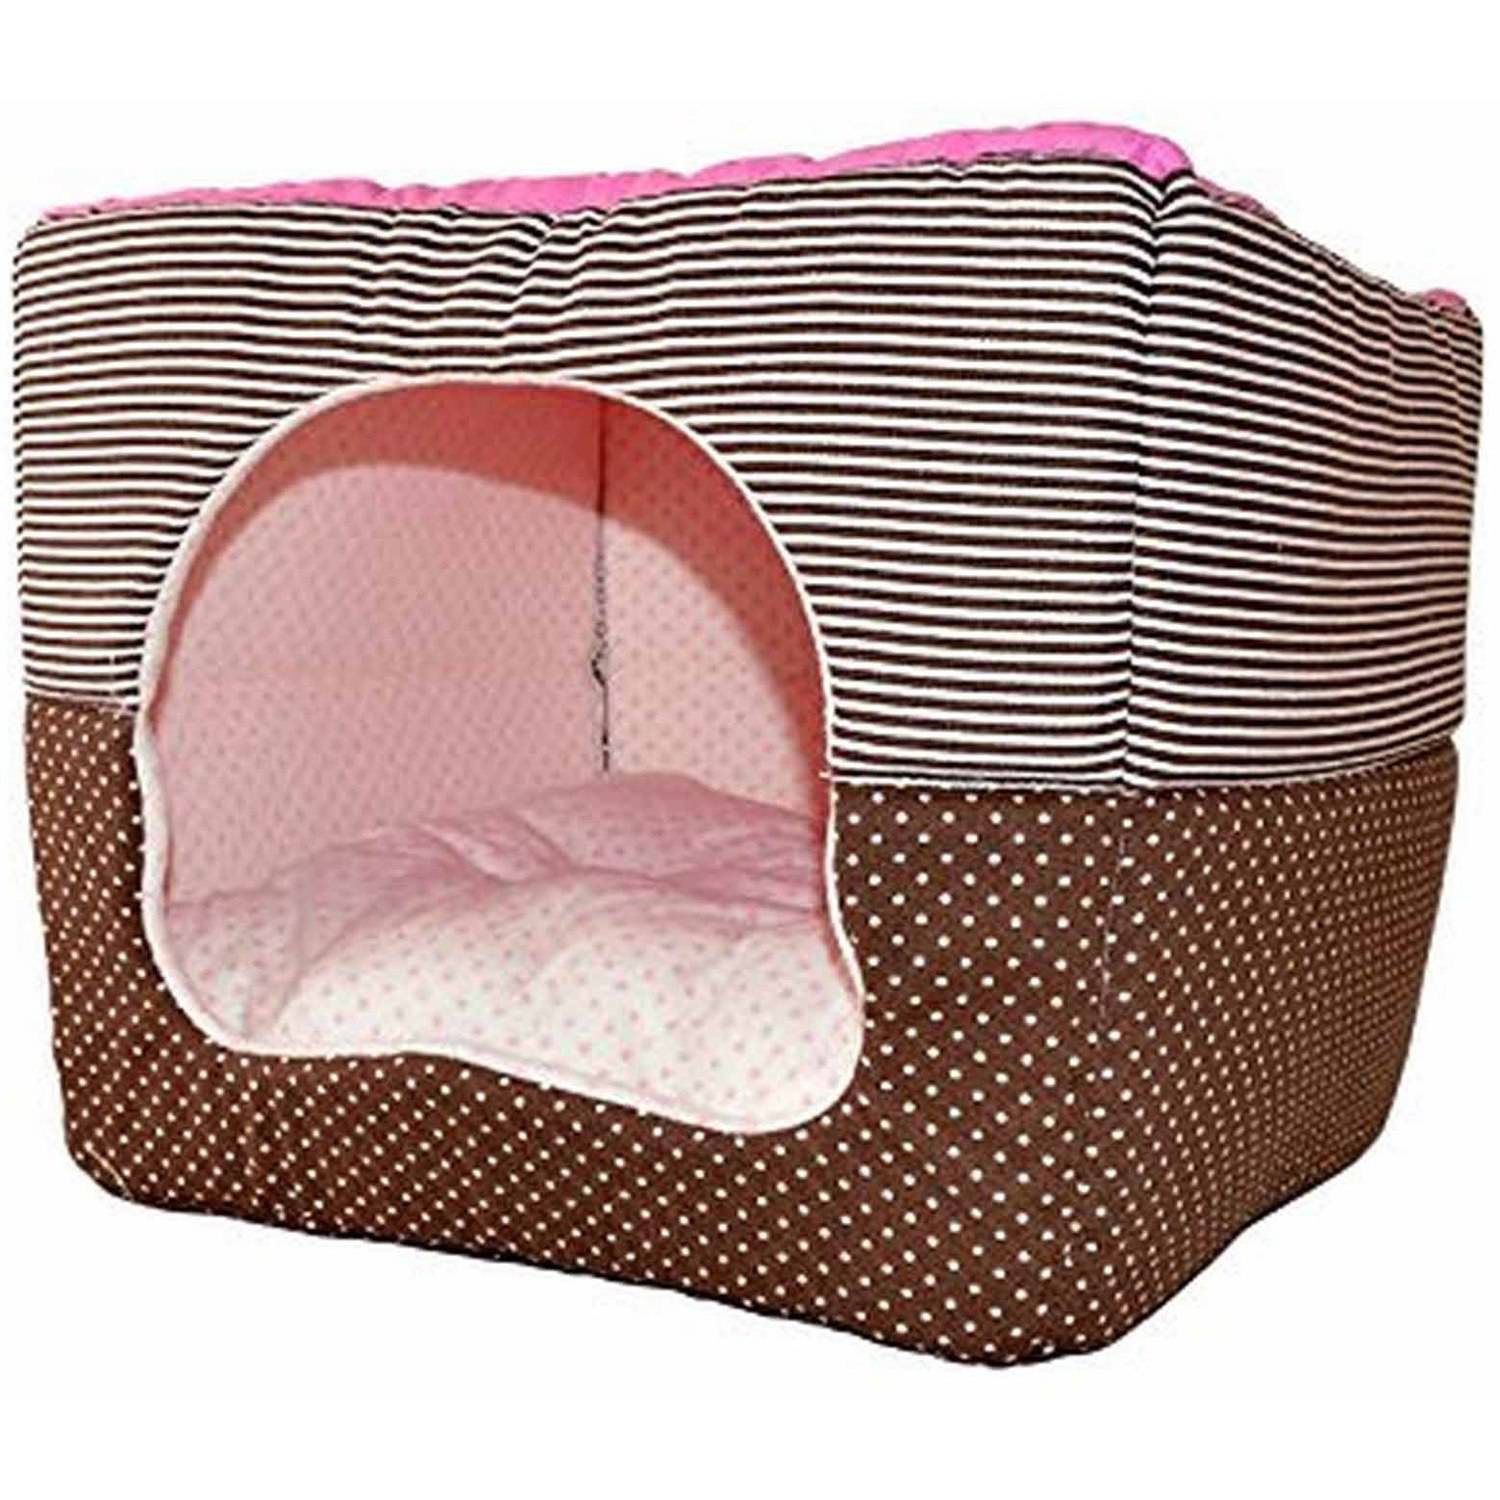 ALEKO ADH14012S Soft Pet Dog Cat Bed House Kennel Doggy Warm Cushion Basket